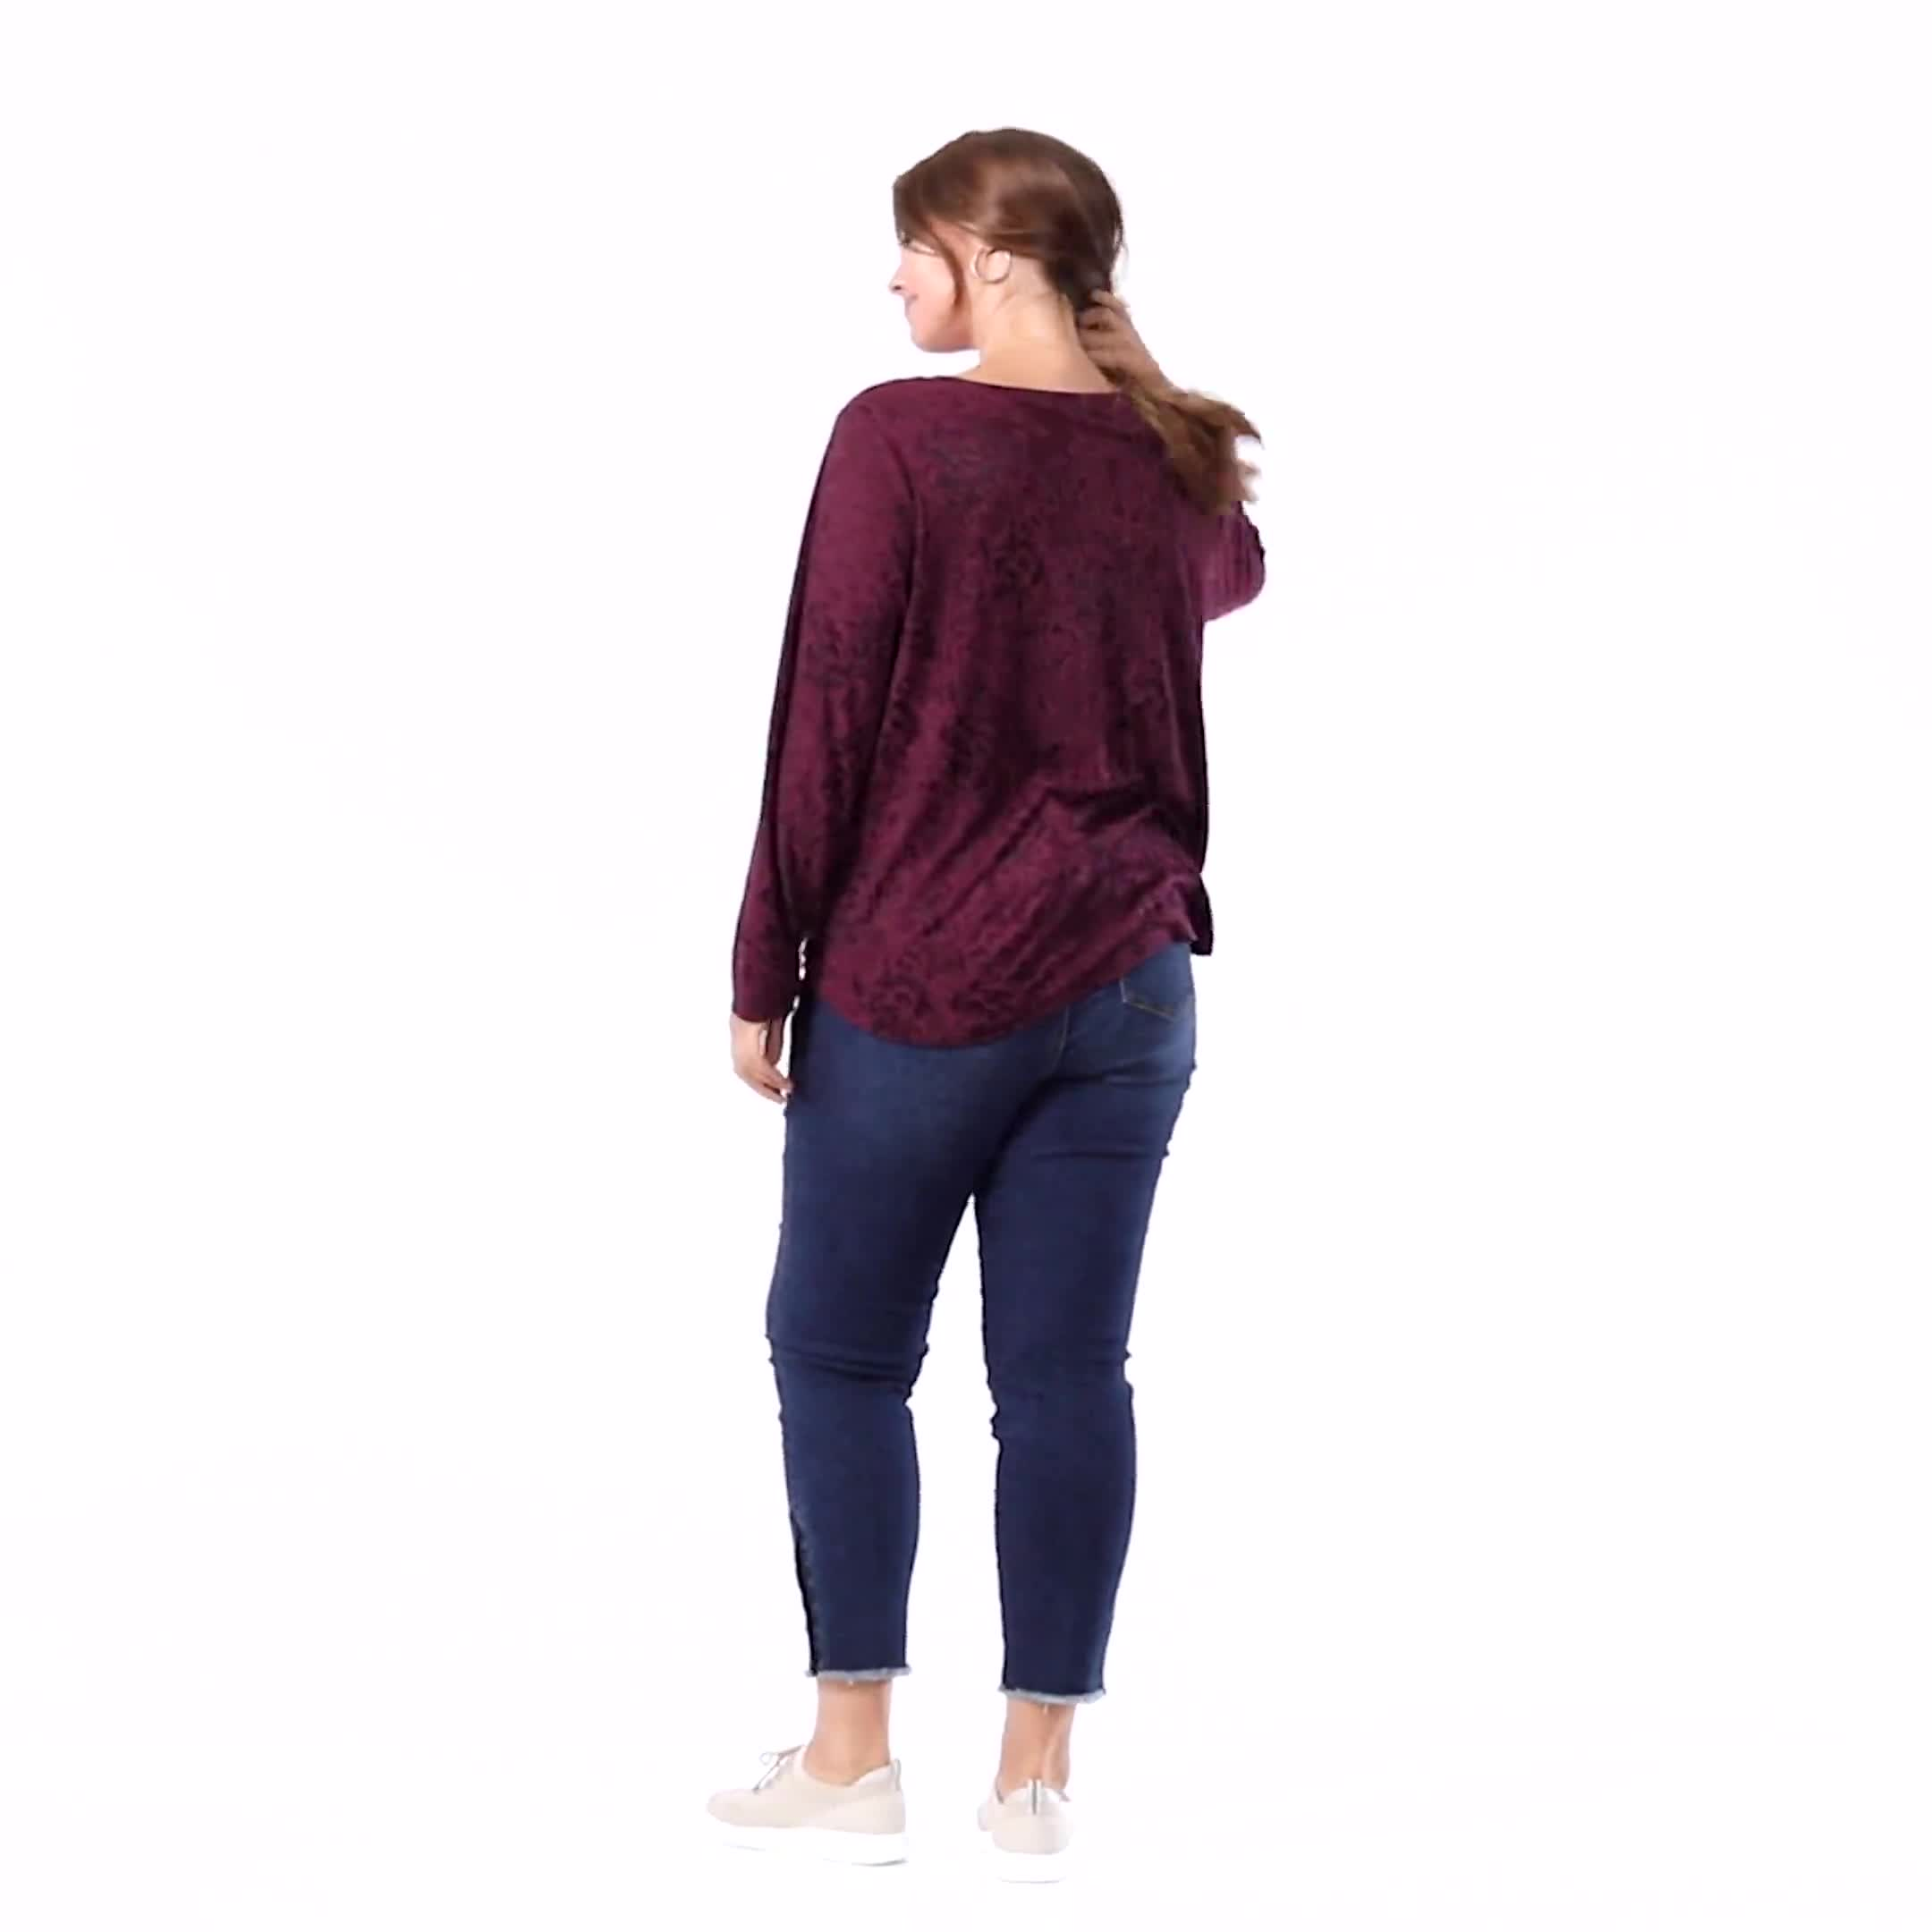 Jacquard Knit Top - Plus - Video